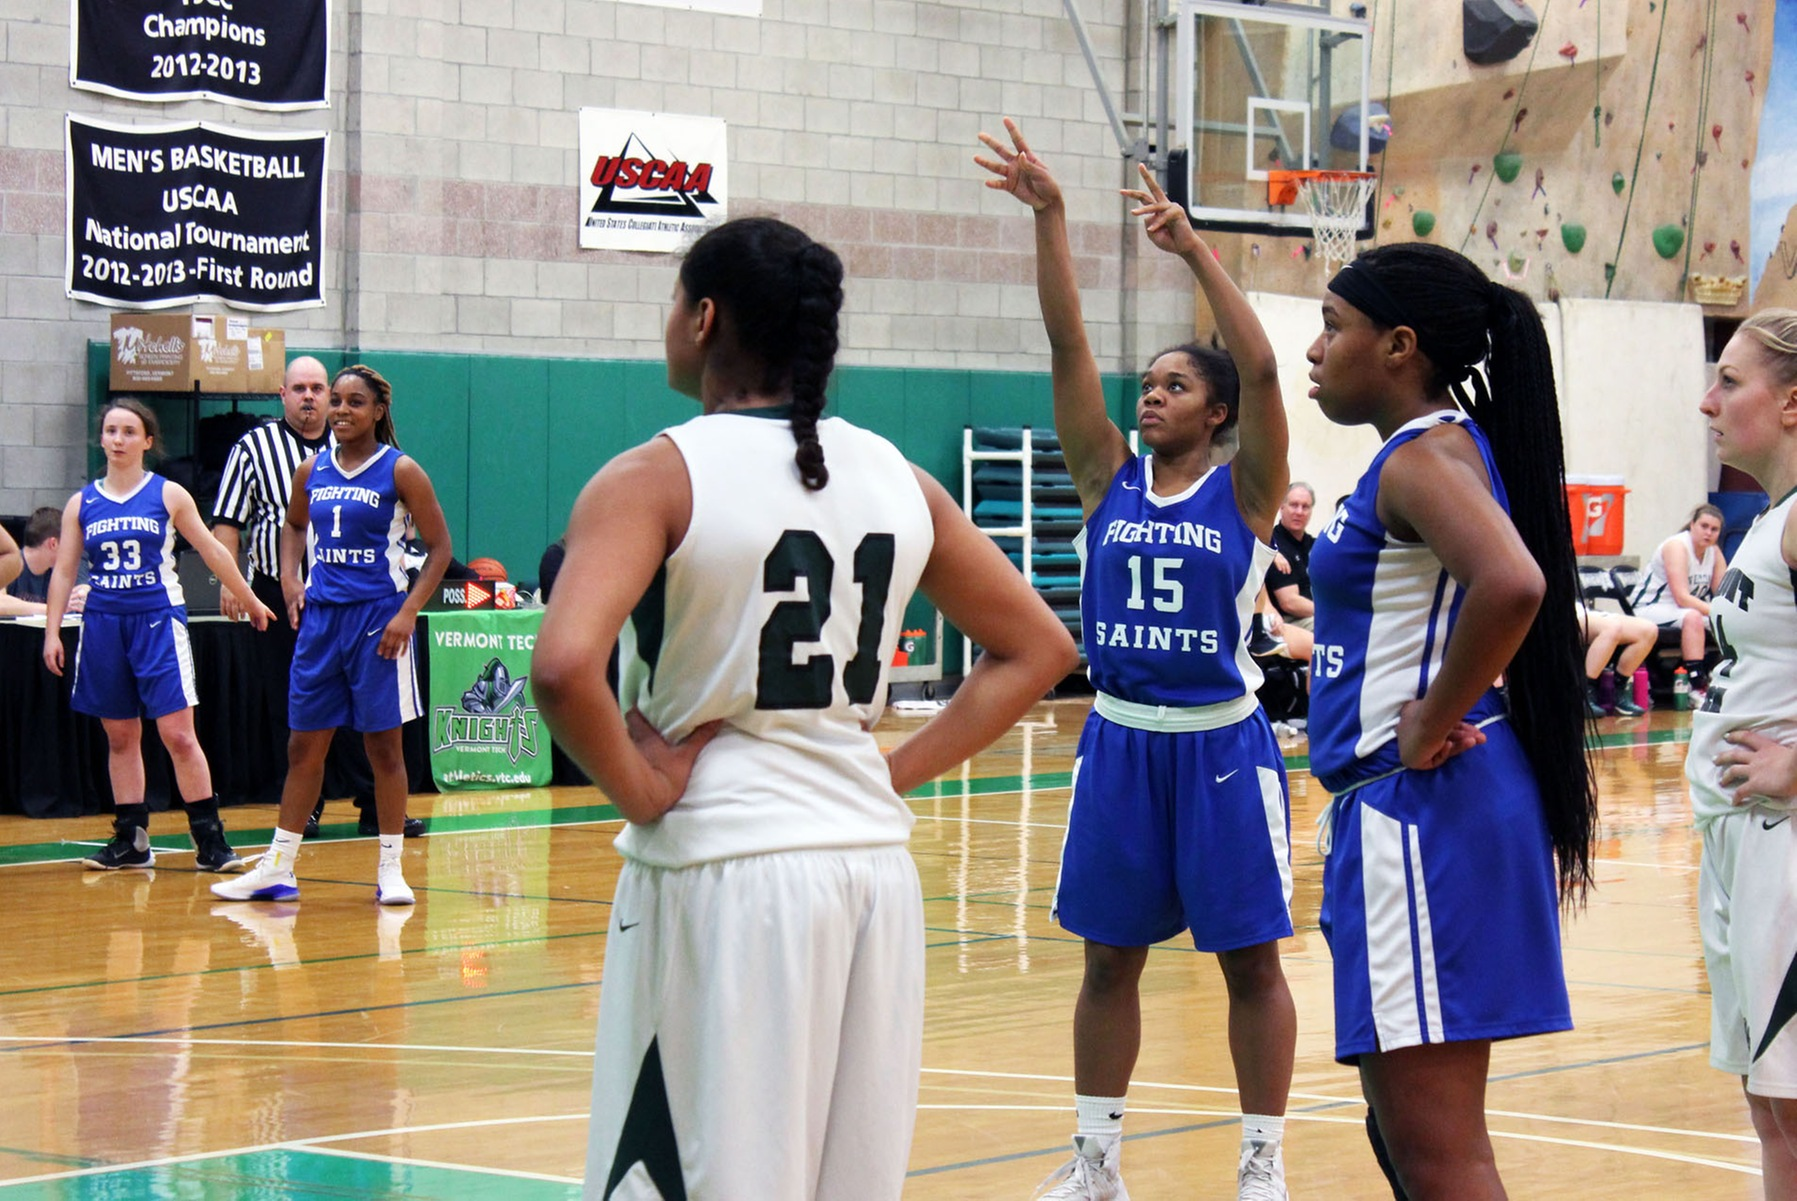 Lady Saints travel to Rivier University